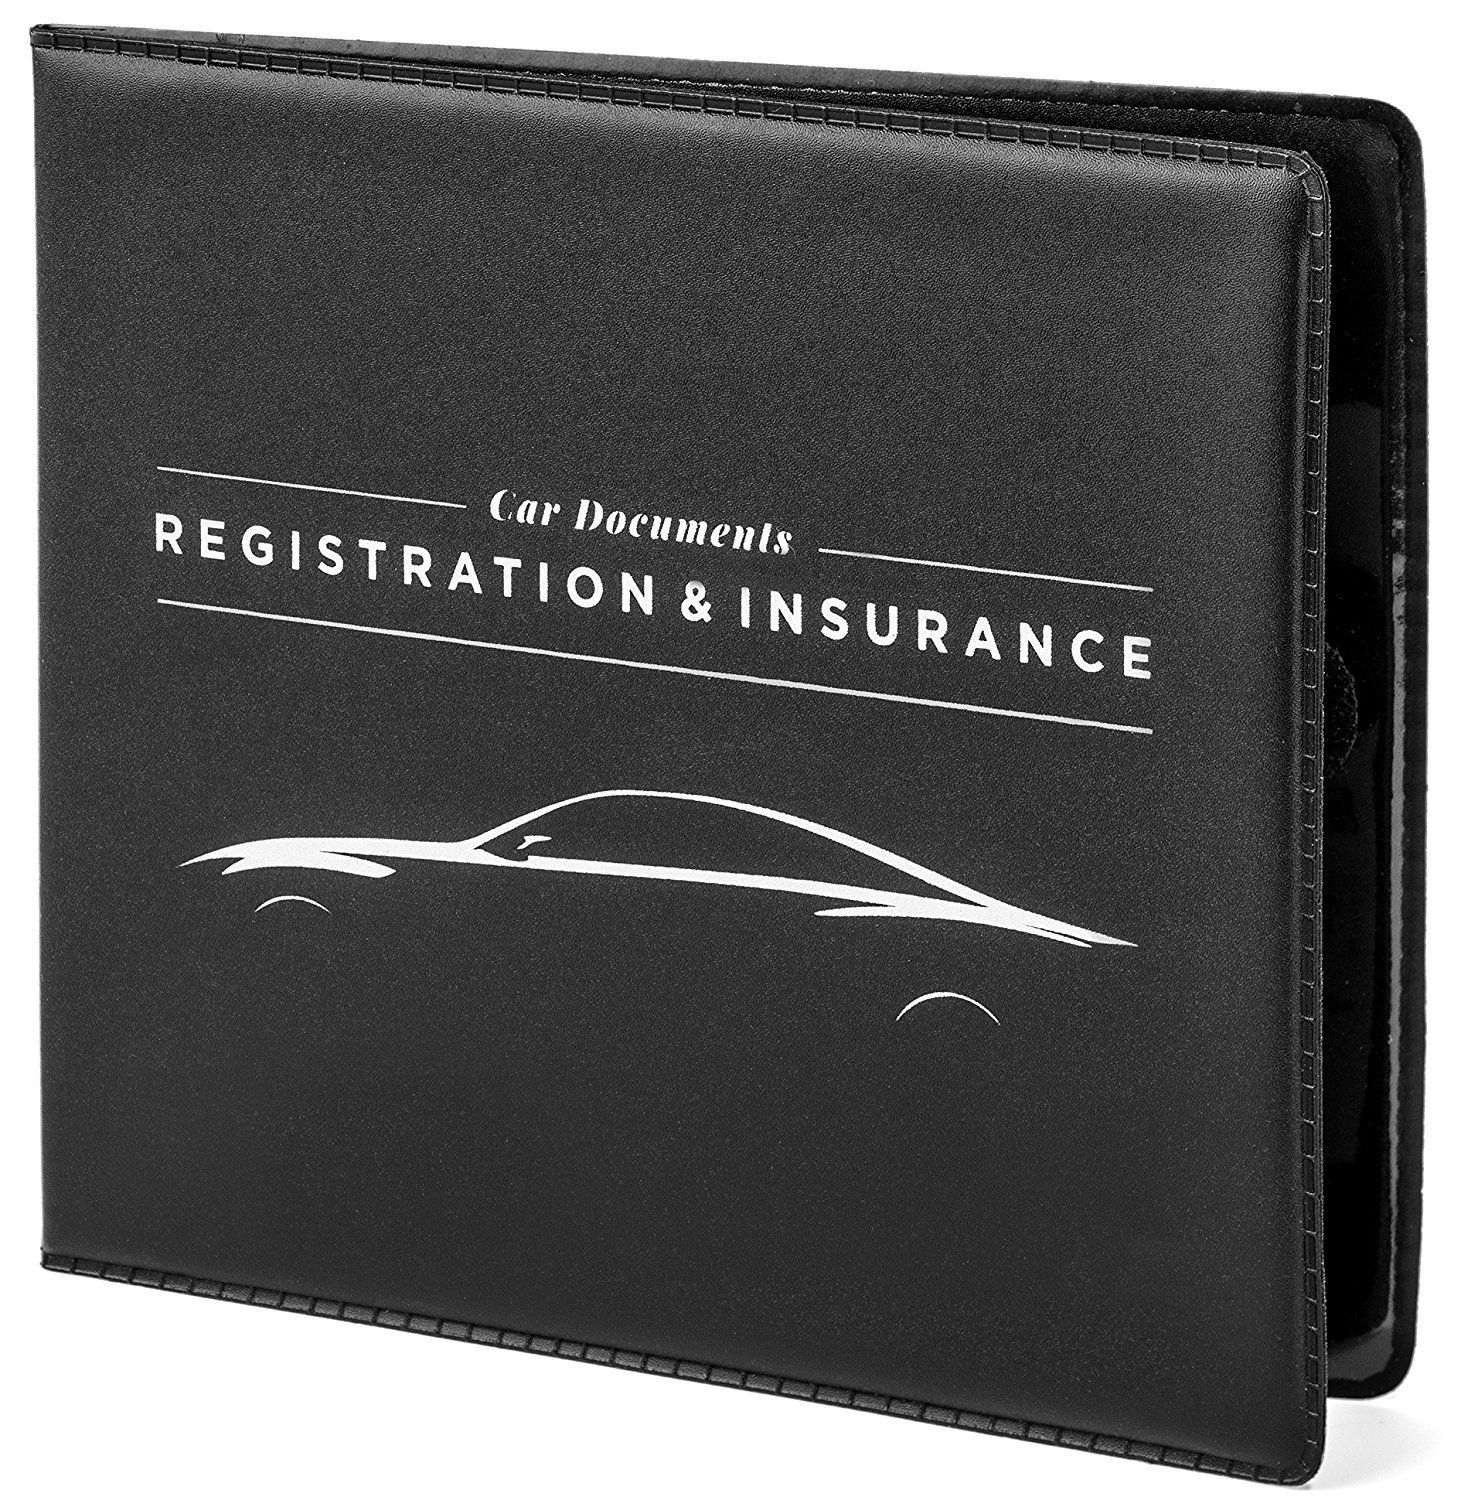 Farewell letter from affordable car insurance document